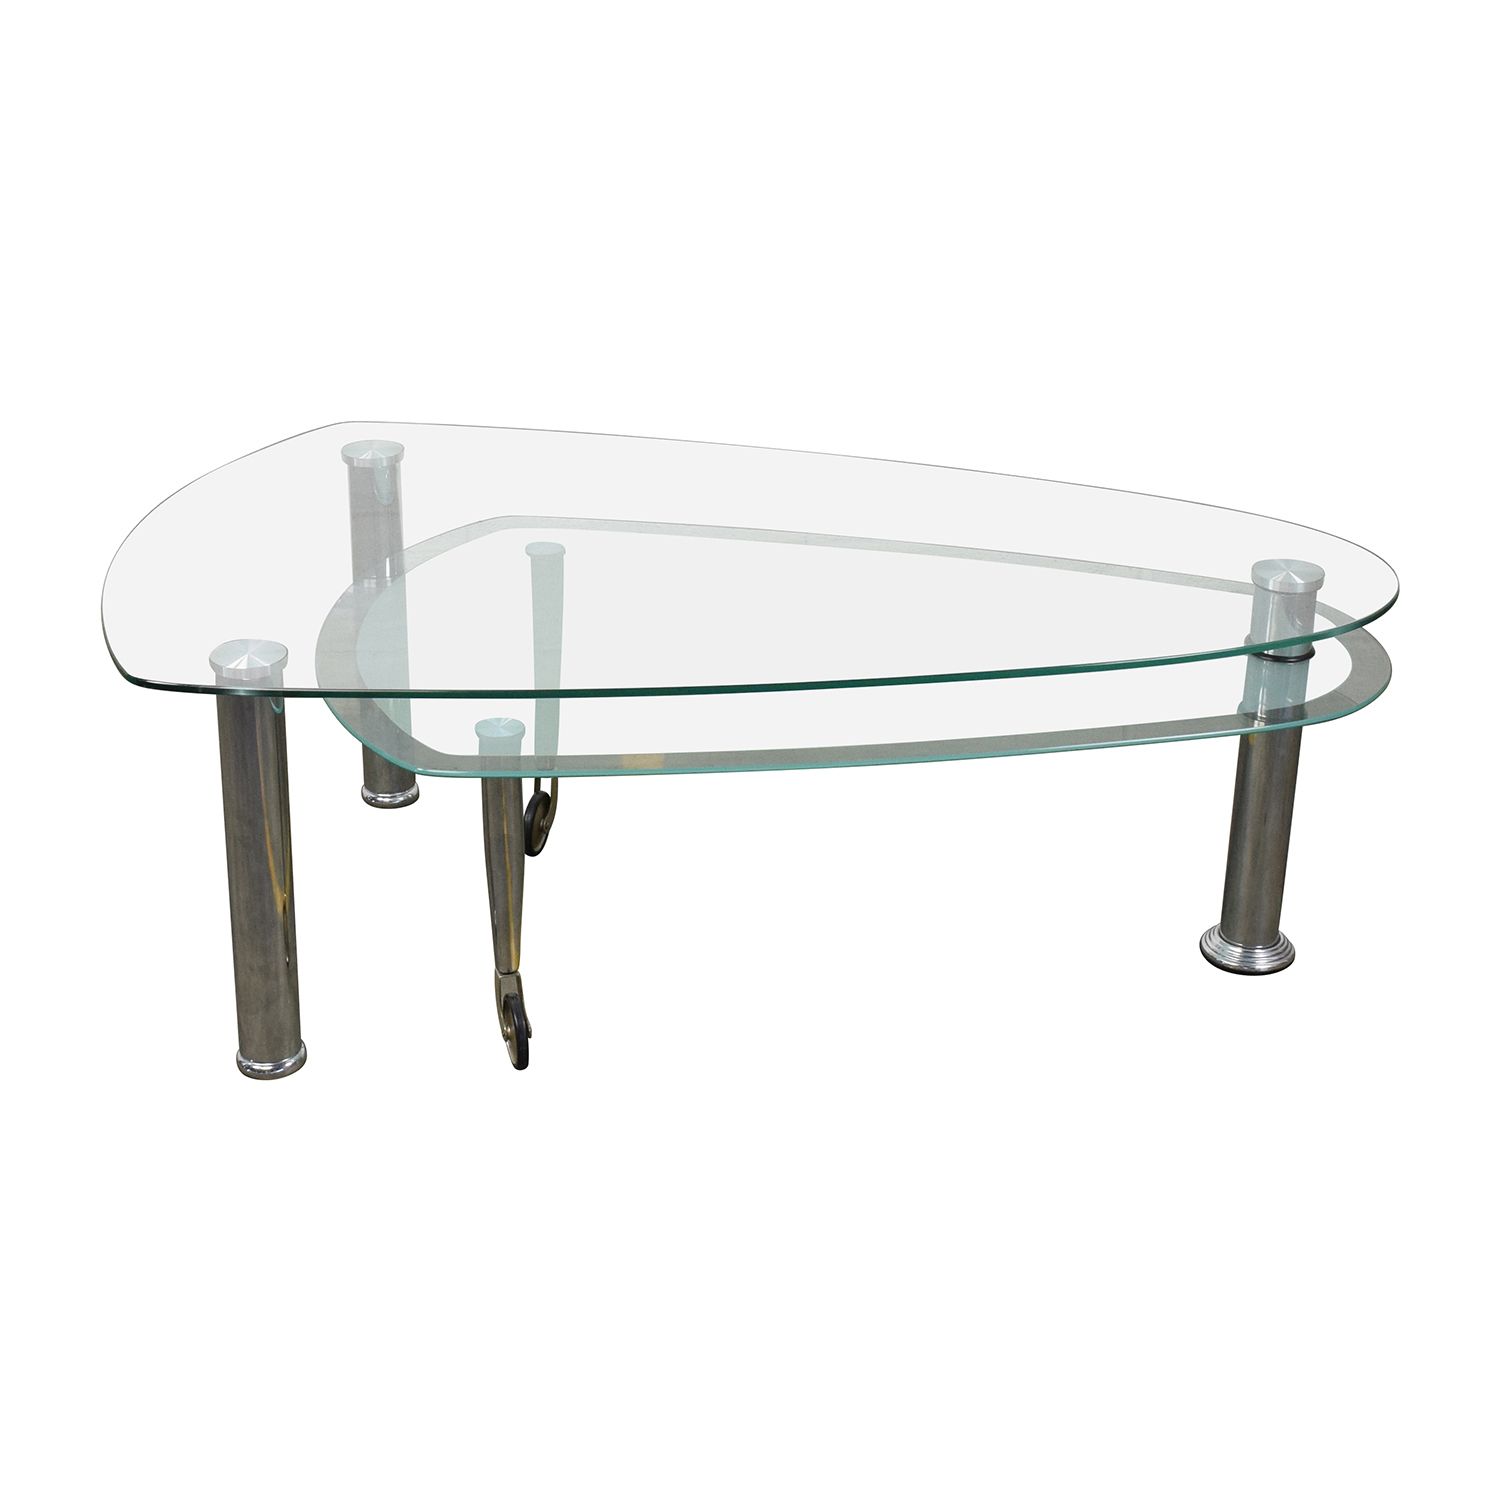 buy Triangular Rounded Glass and Chrome Table